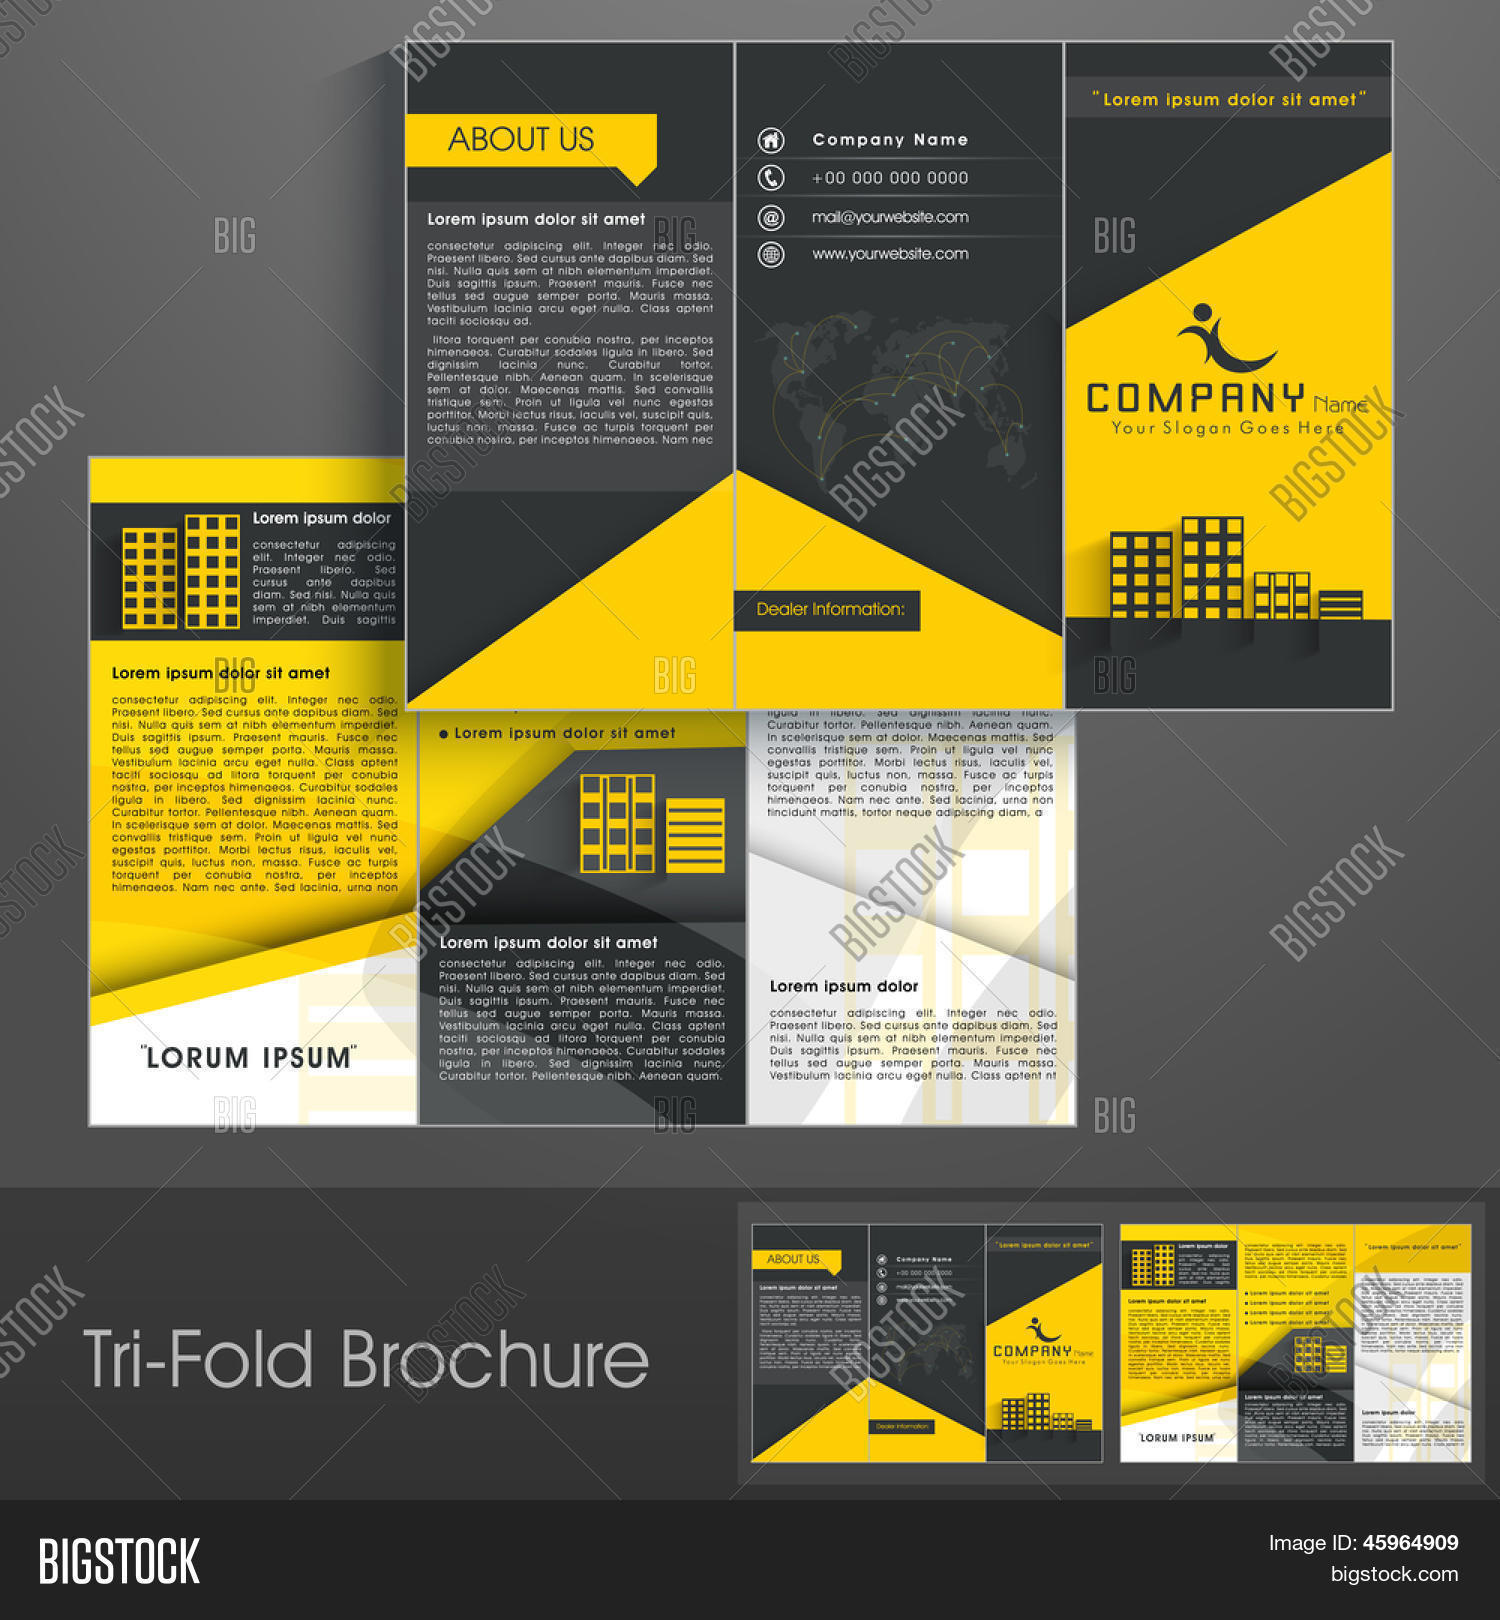 Professional Business Three Fold Vector & Photo | Bigstock